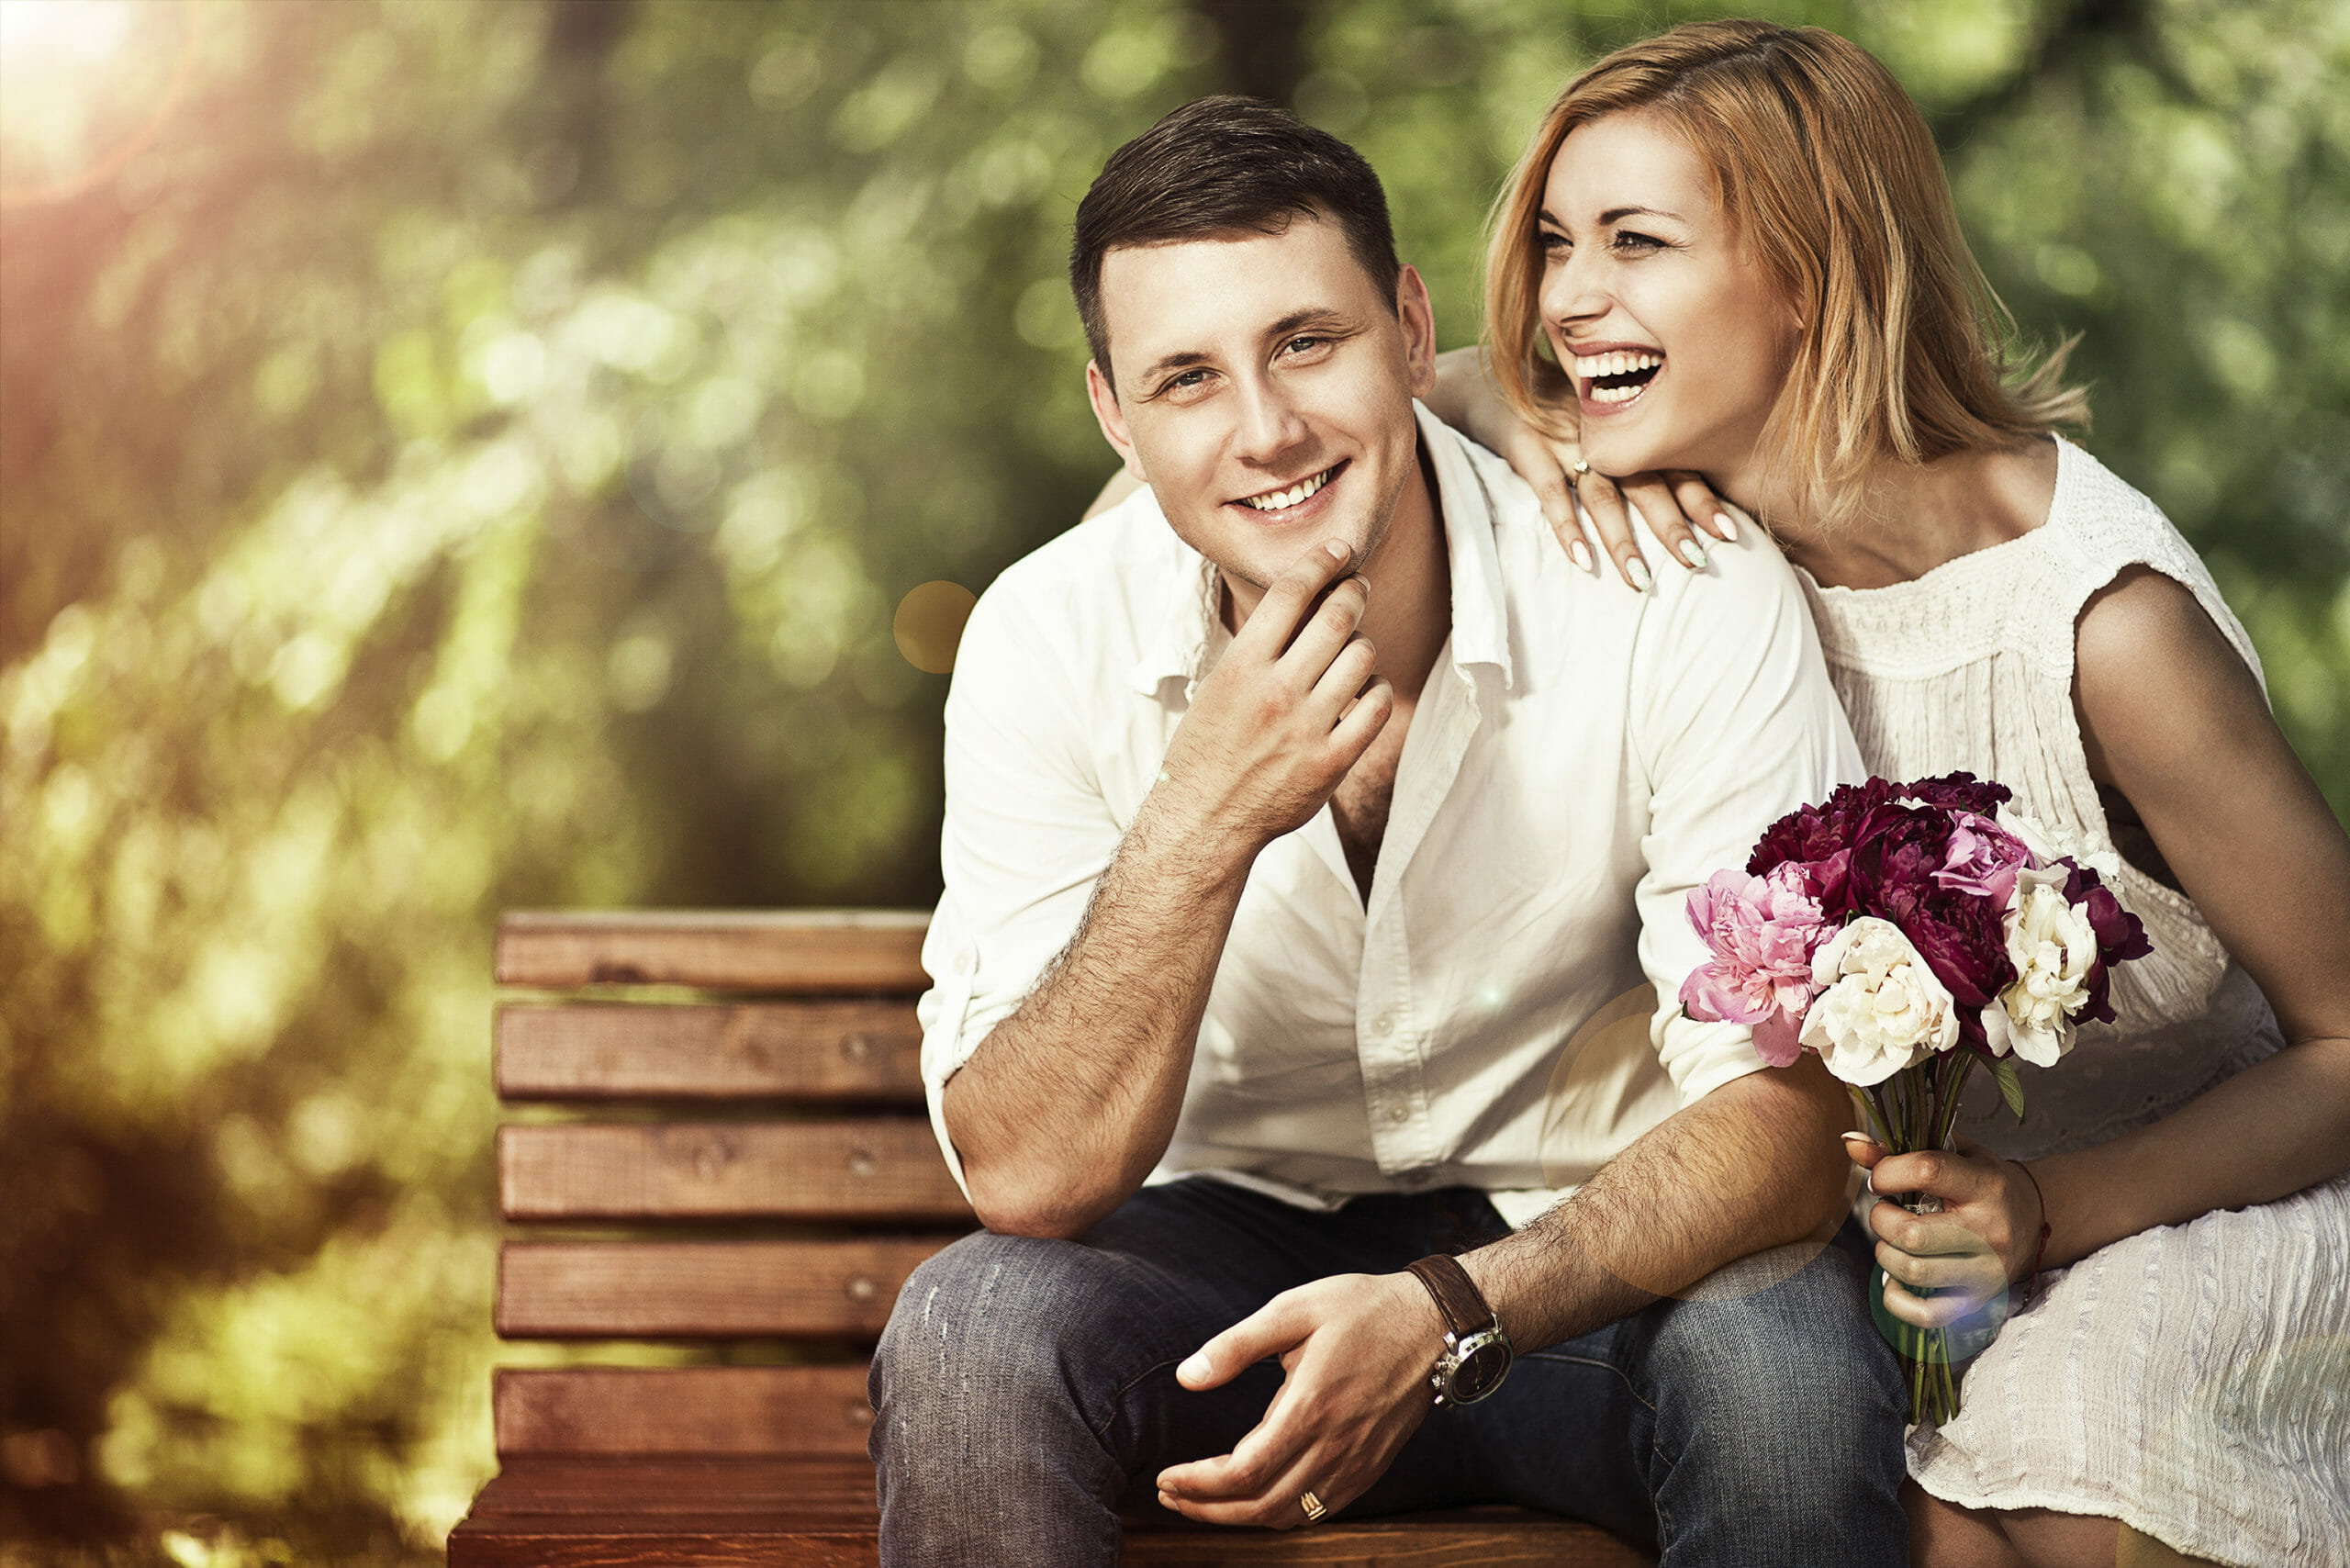 love-marriage-concept-young-attractive-cheerful-249611884